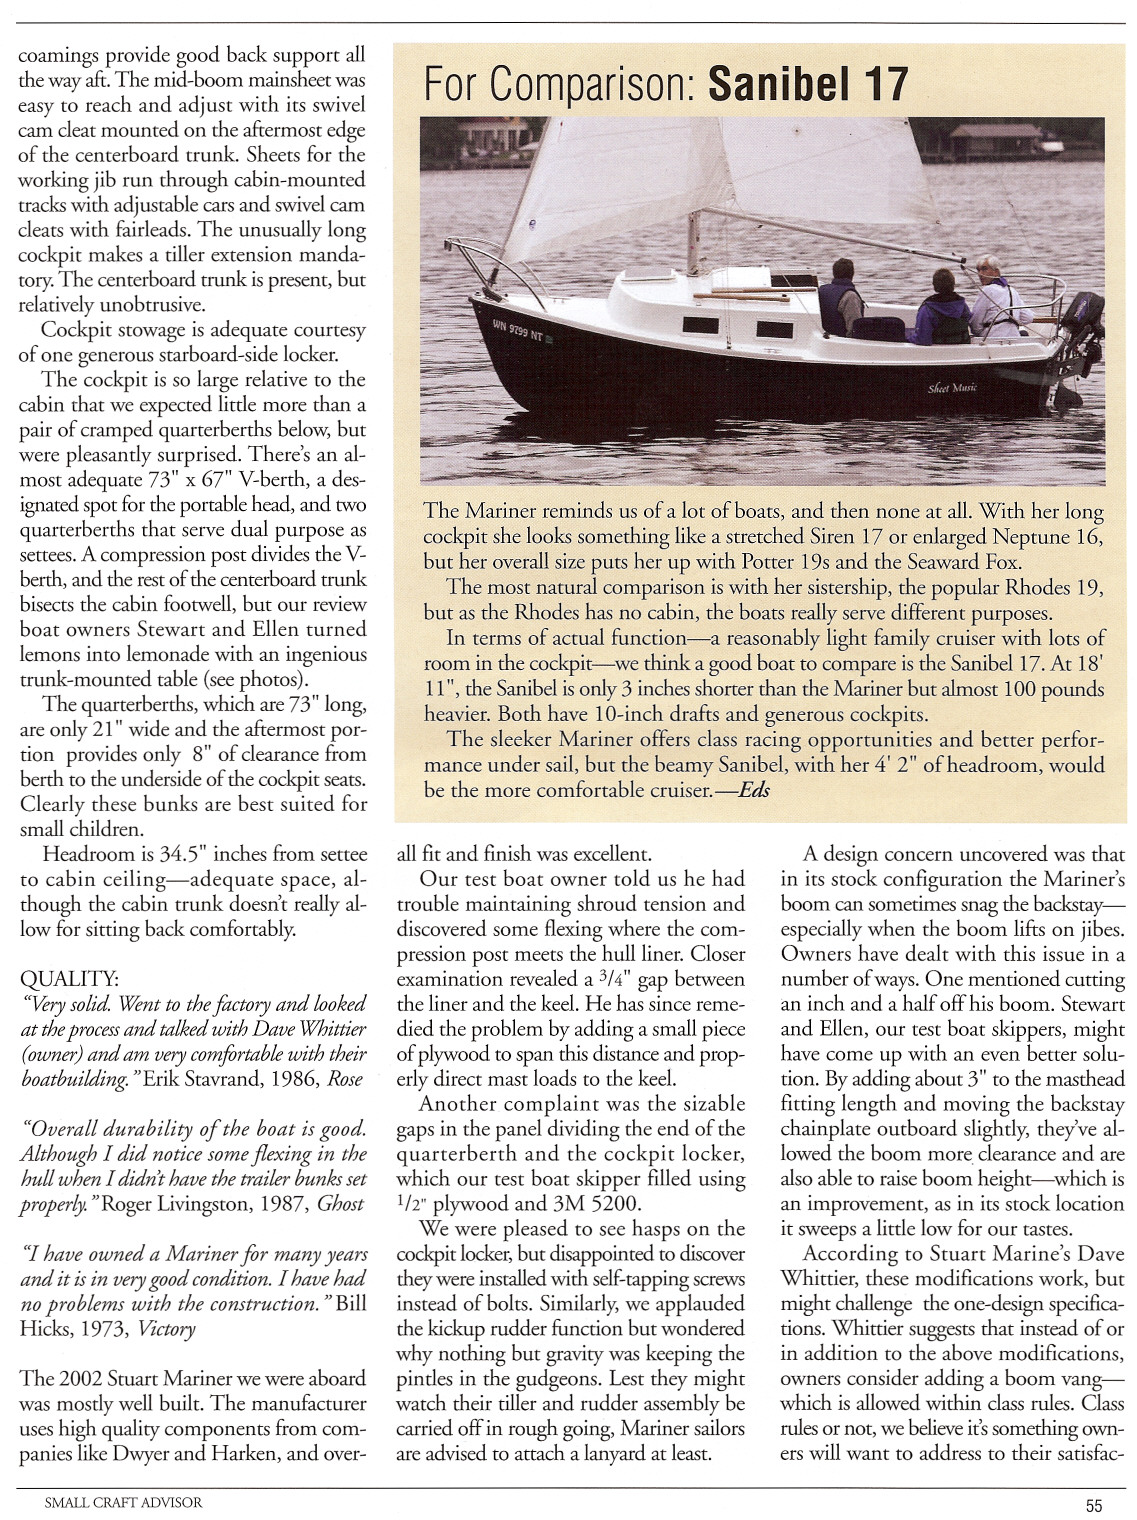 Small Craft Advisor_January_February_2008_No_49_Page_5.jpg